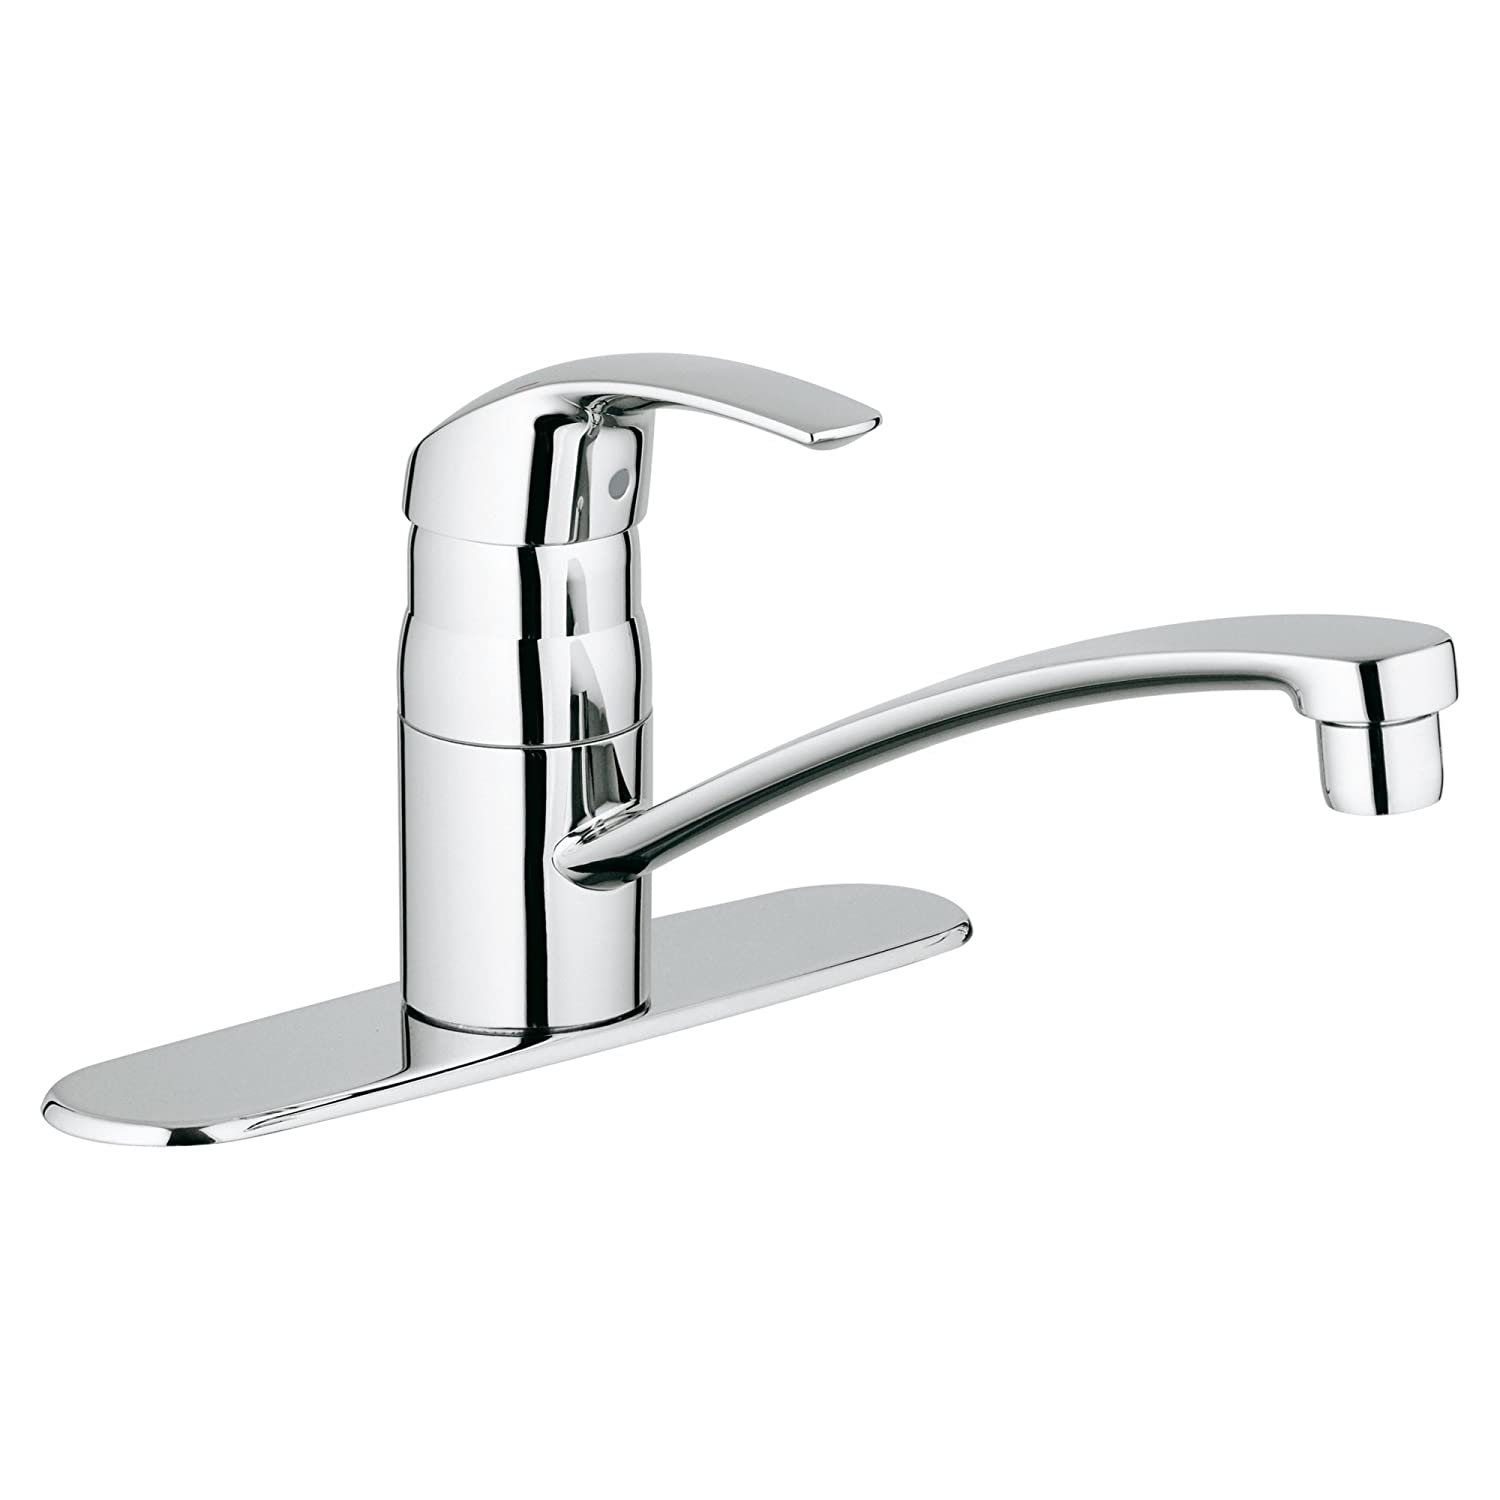 Eurosmart Centerset Single-Handle Kitchen Faucet With Swivel Spout